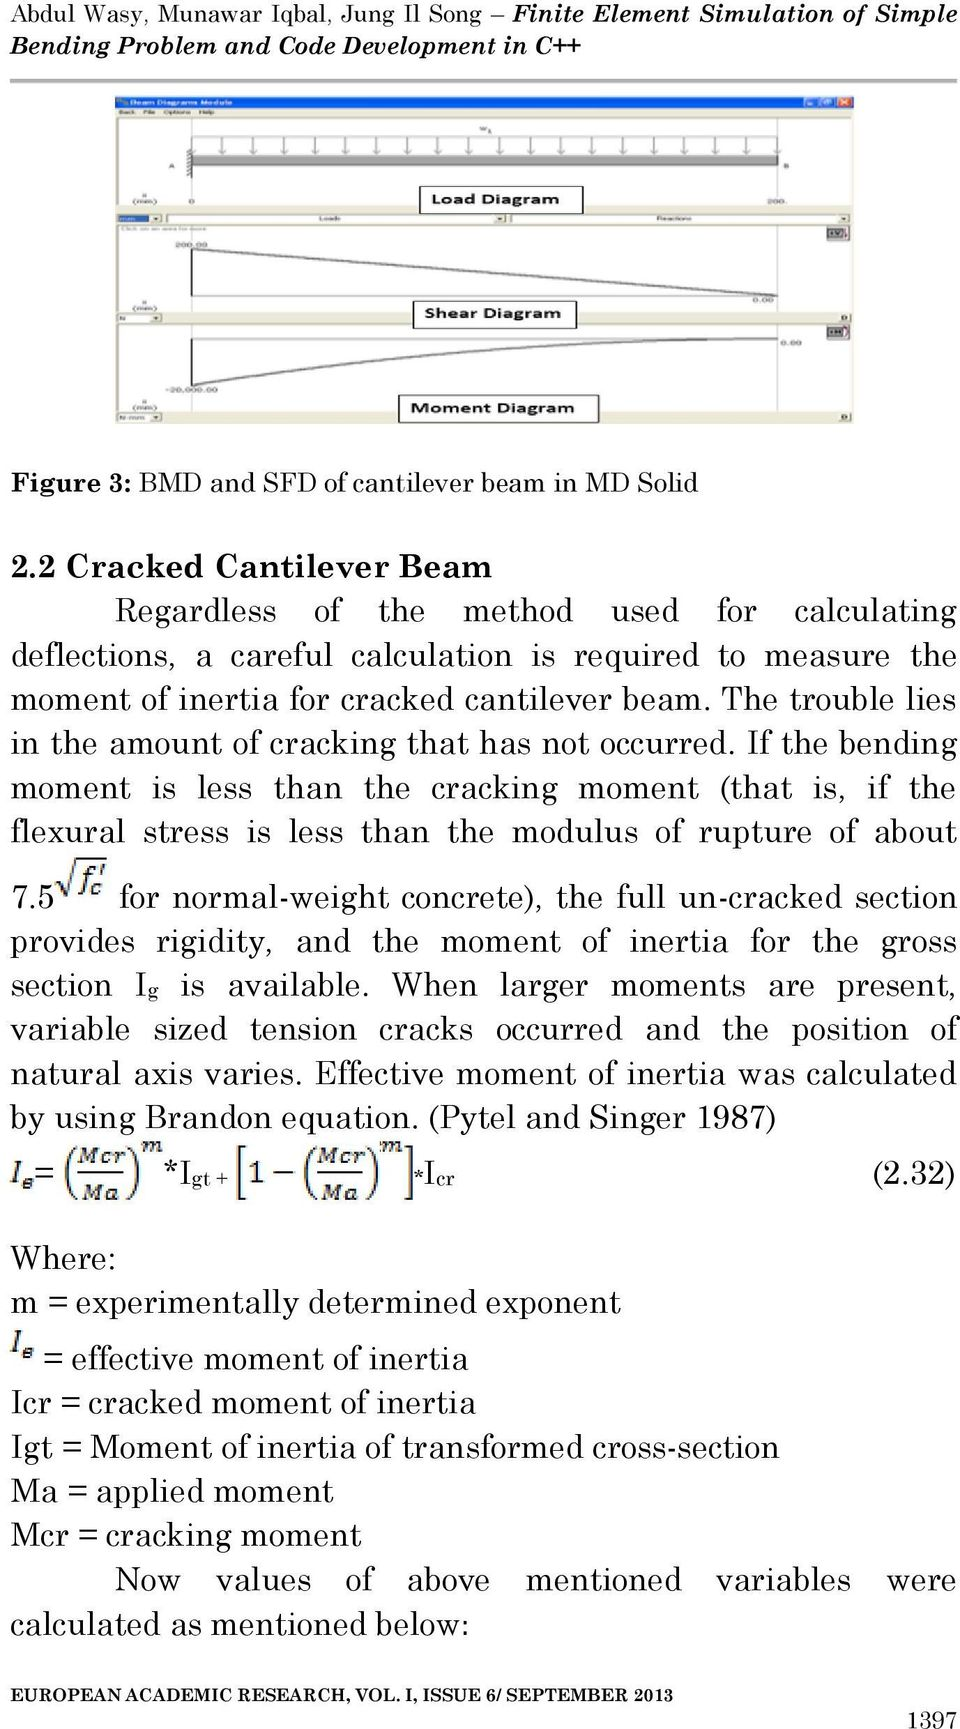 Finite Element Simulation Of Simple Bending Problem And Code Text Draw The Shear Bendingmoment Diagrams For Beam Trouble Lies In Amount Cracking That Has Not Occurred